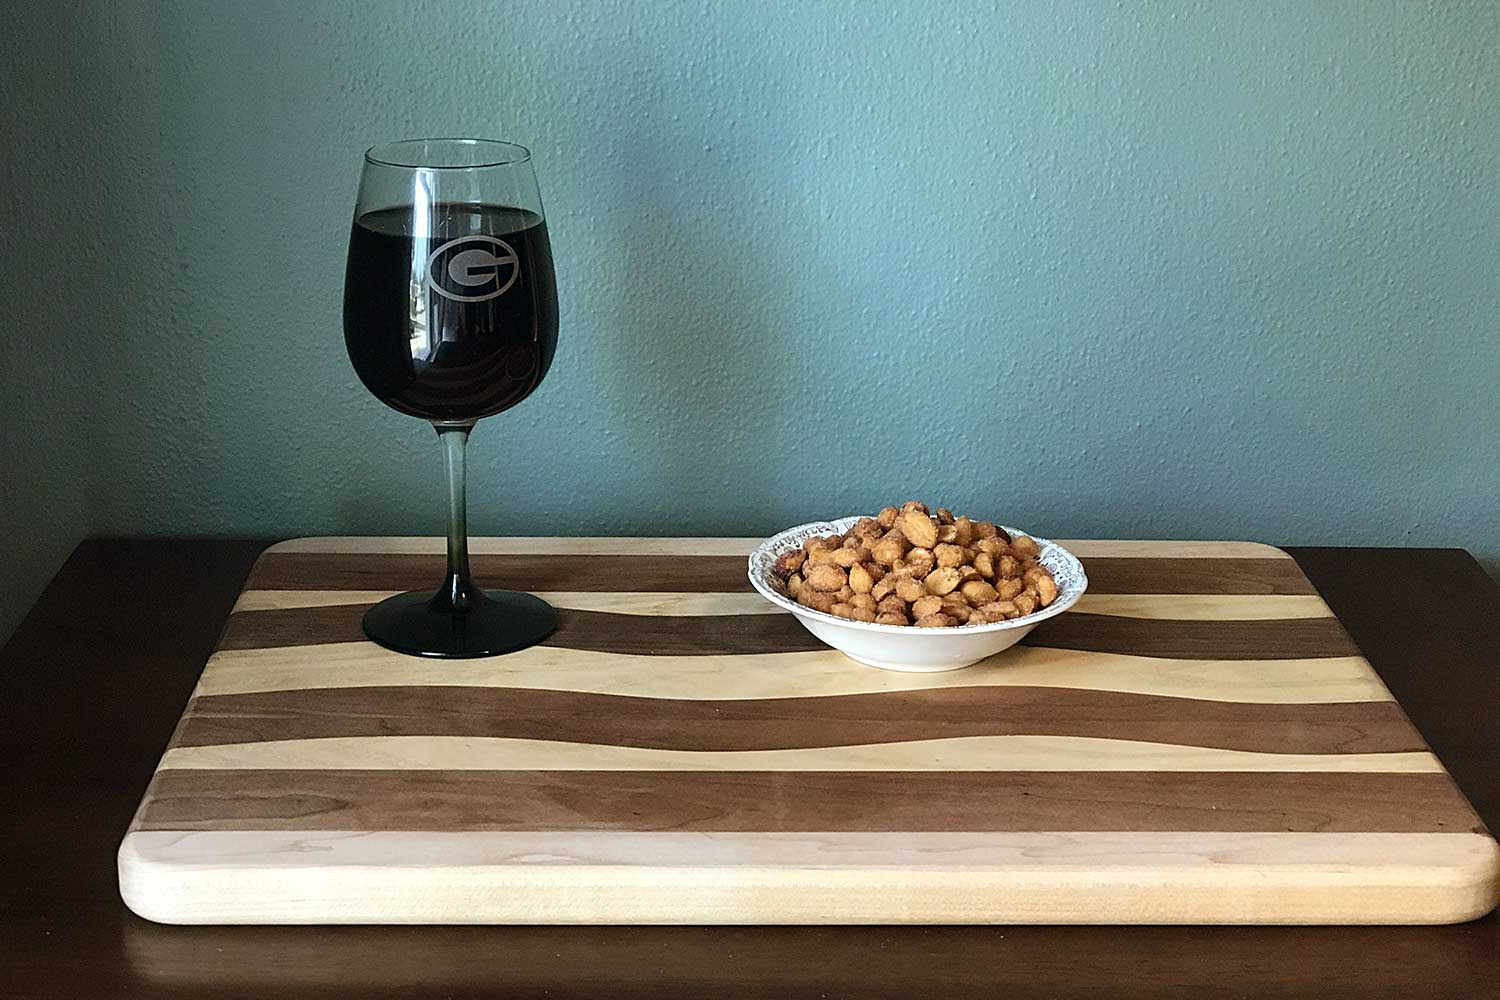 Ice Bowl wine and peanuts